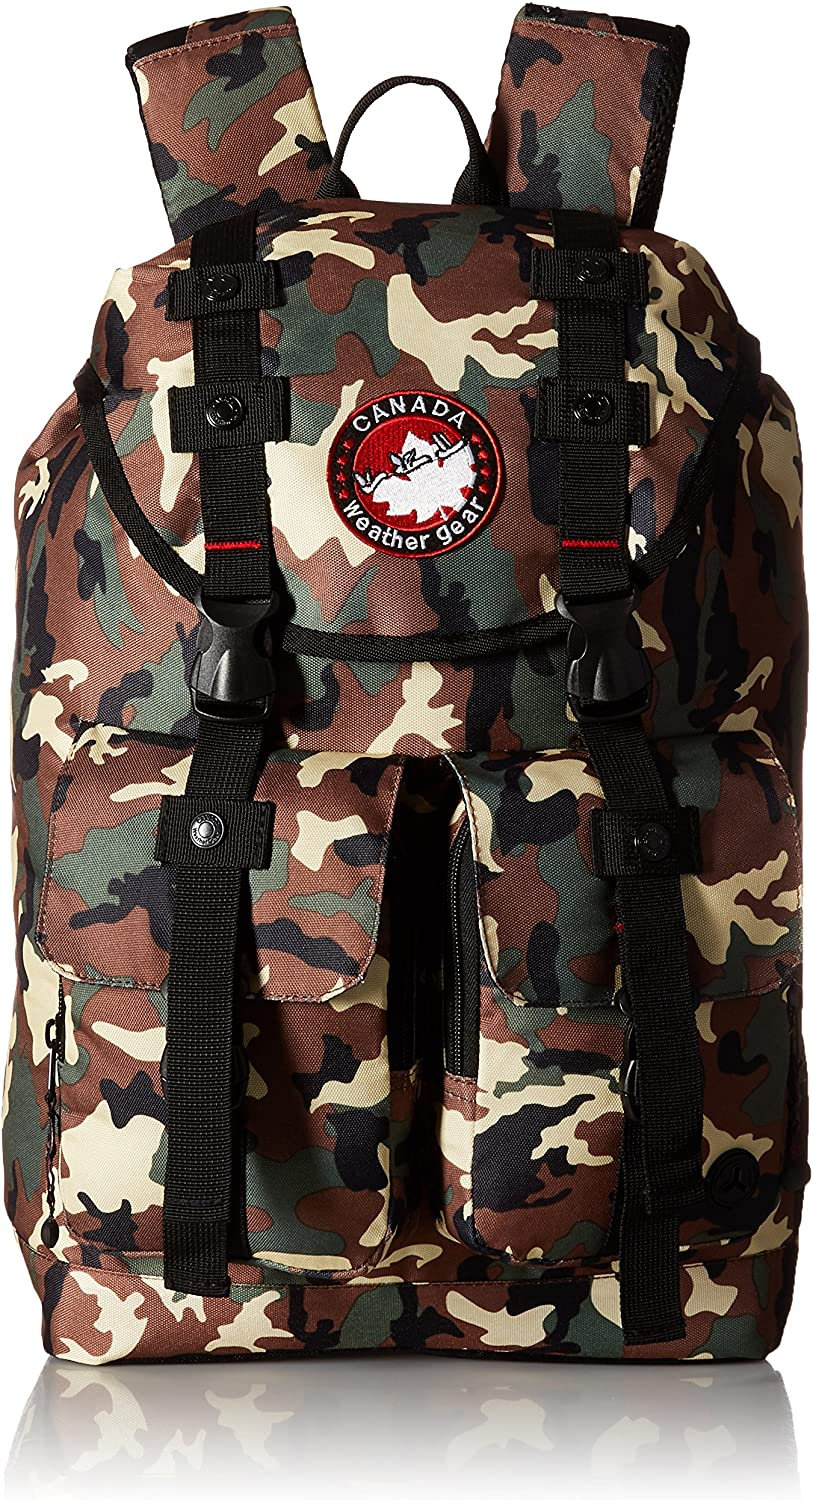 Inventory cleanup selling sale Canada Weather Gear -21-Traditional Camo Backpack Incognito-Tan Max 60% OFF